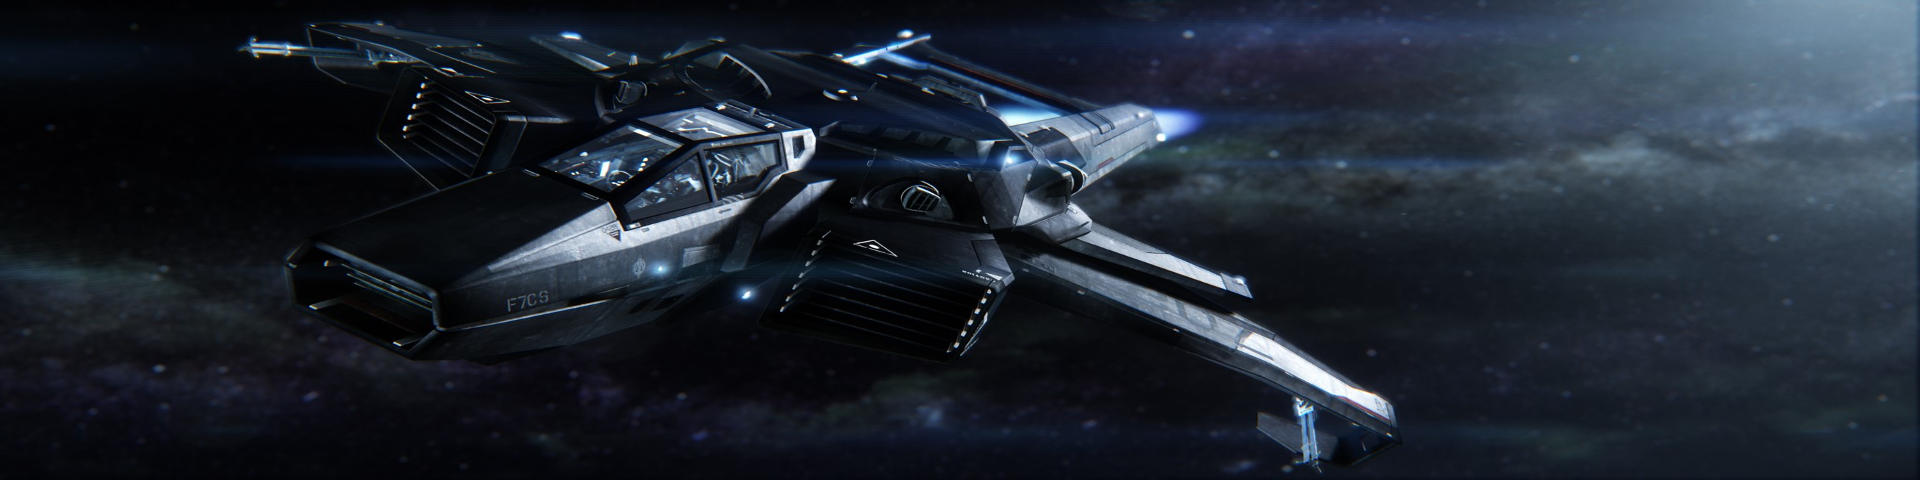 A box-chassis fighter on the burn in deep space.